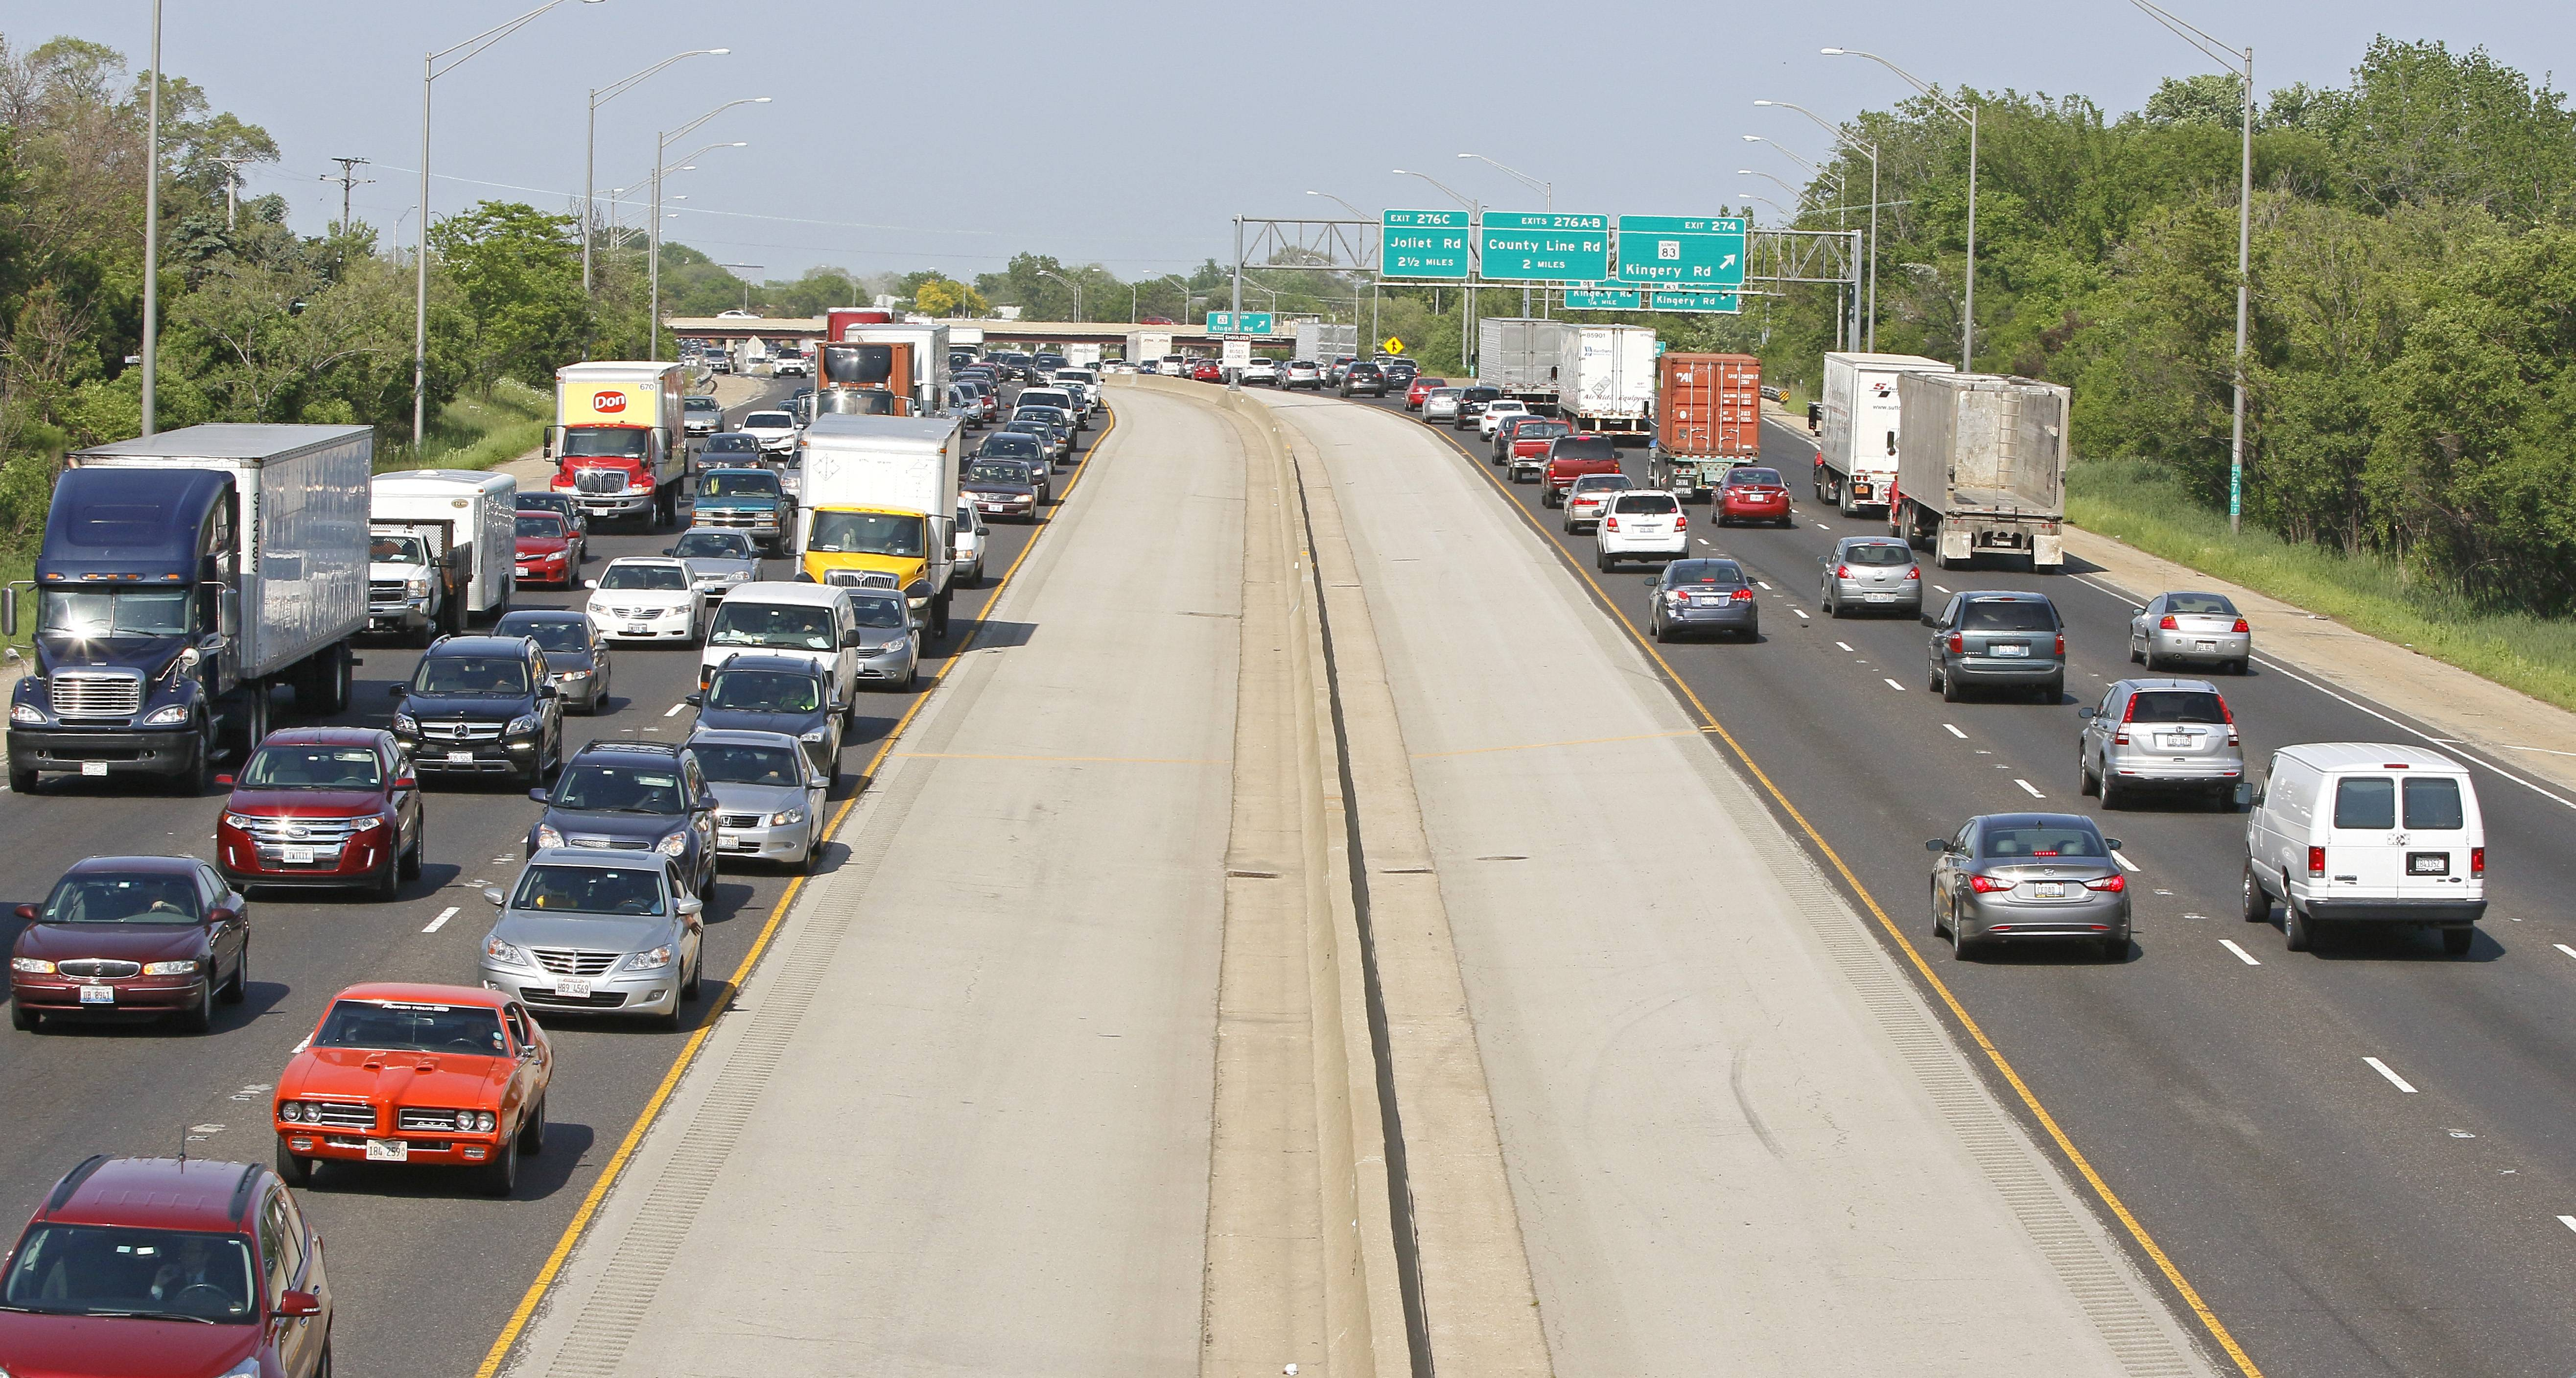 Drivers using I-55 near Clarendon Hills should expect a tolled express lane in the future, according to Illinois State Department of Transportation plans.